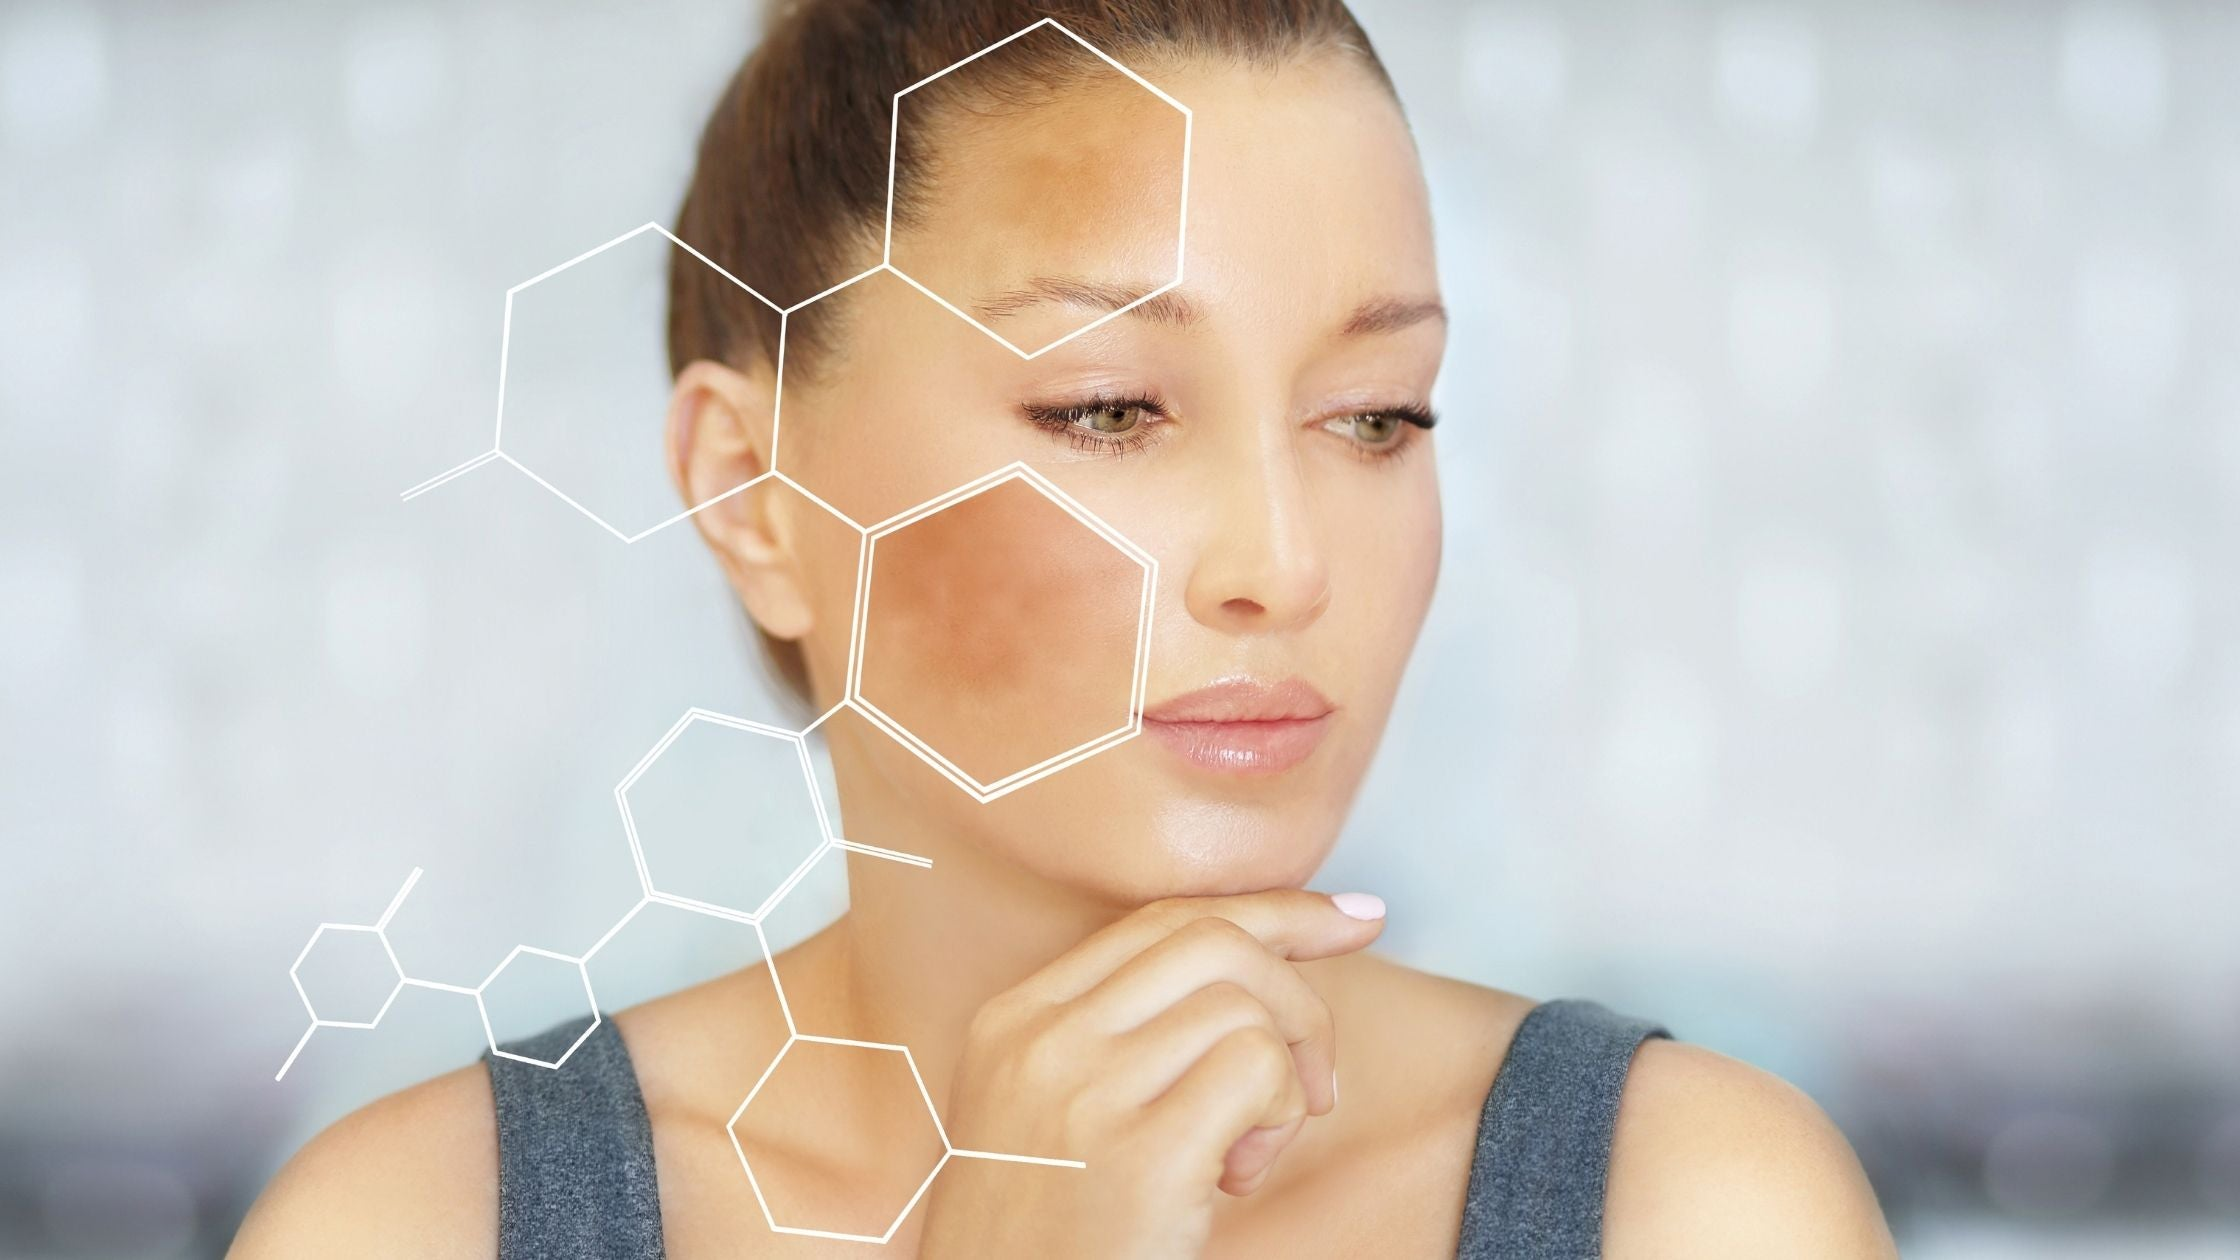 What is Melasma and how to treat it?